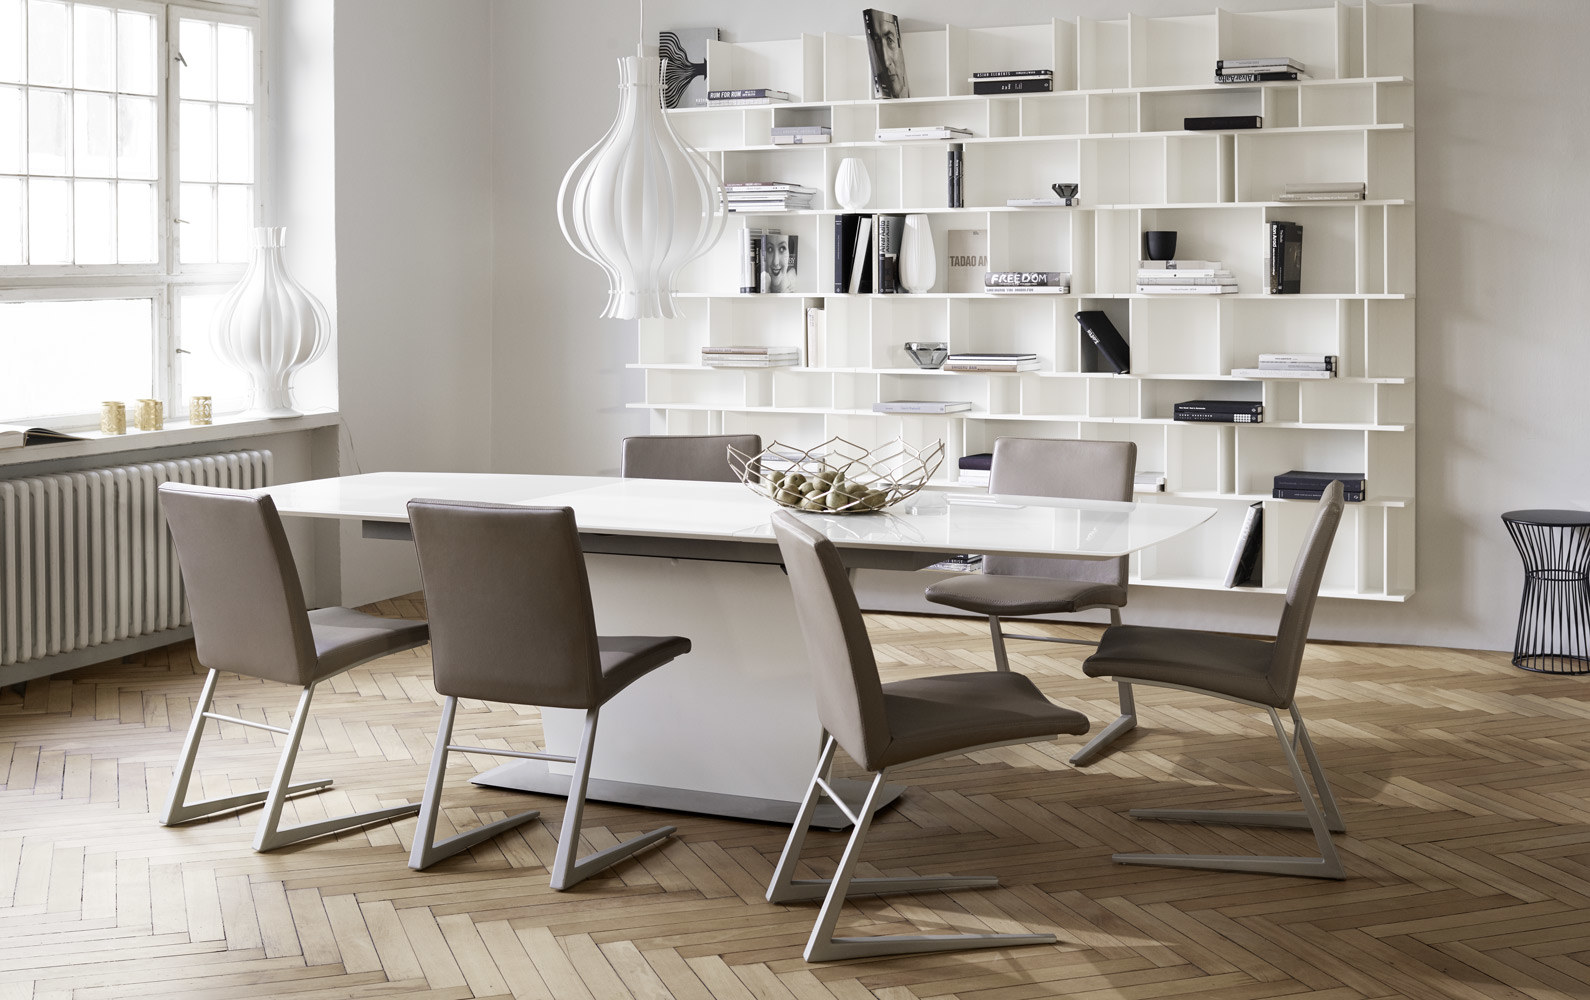 Dining chairs - Mariposa Deluxe chair